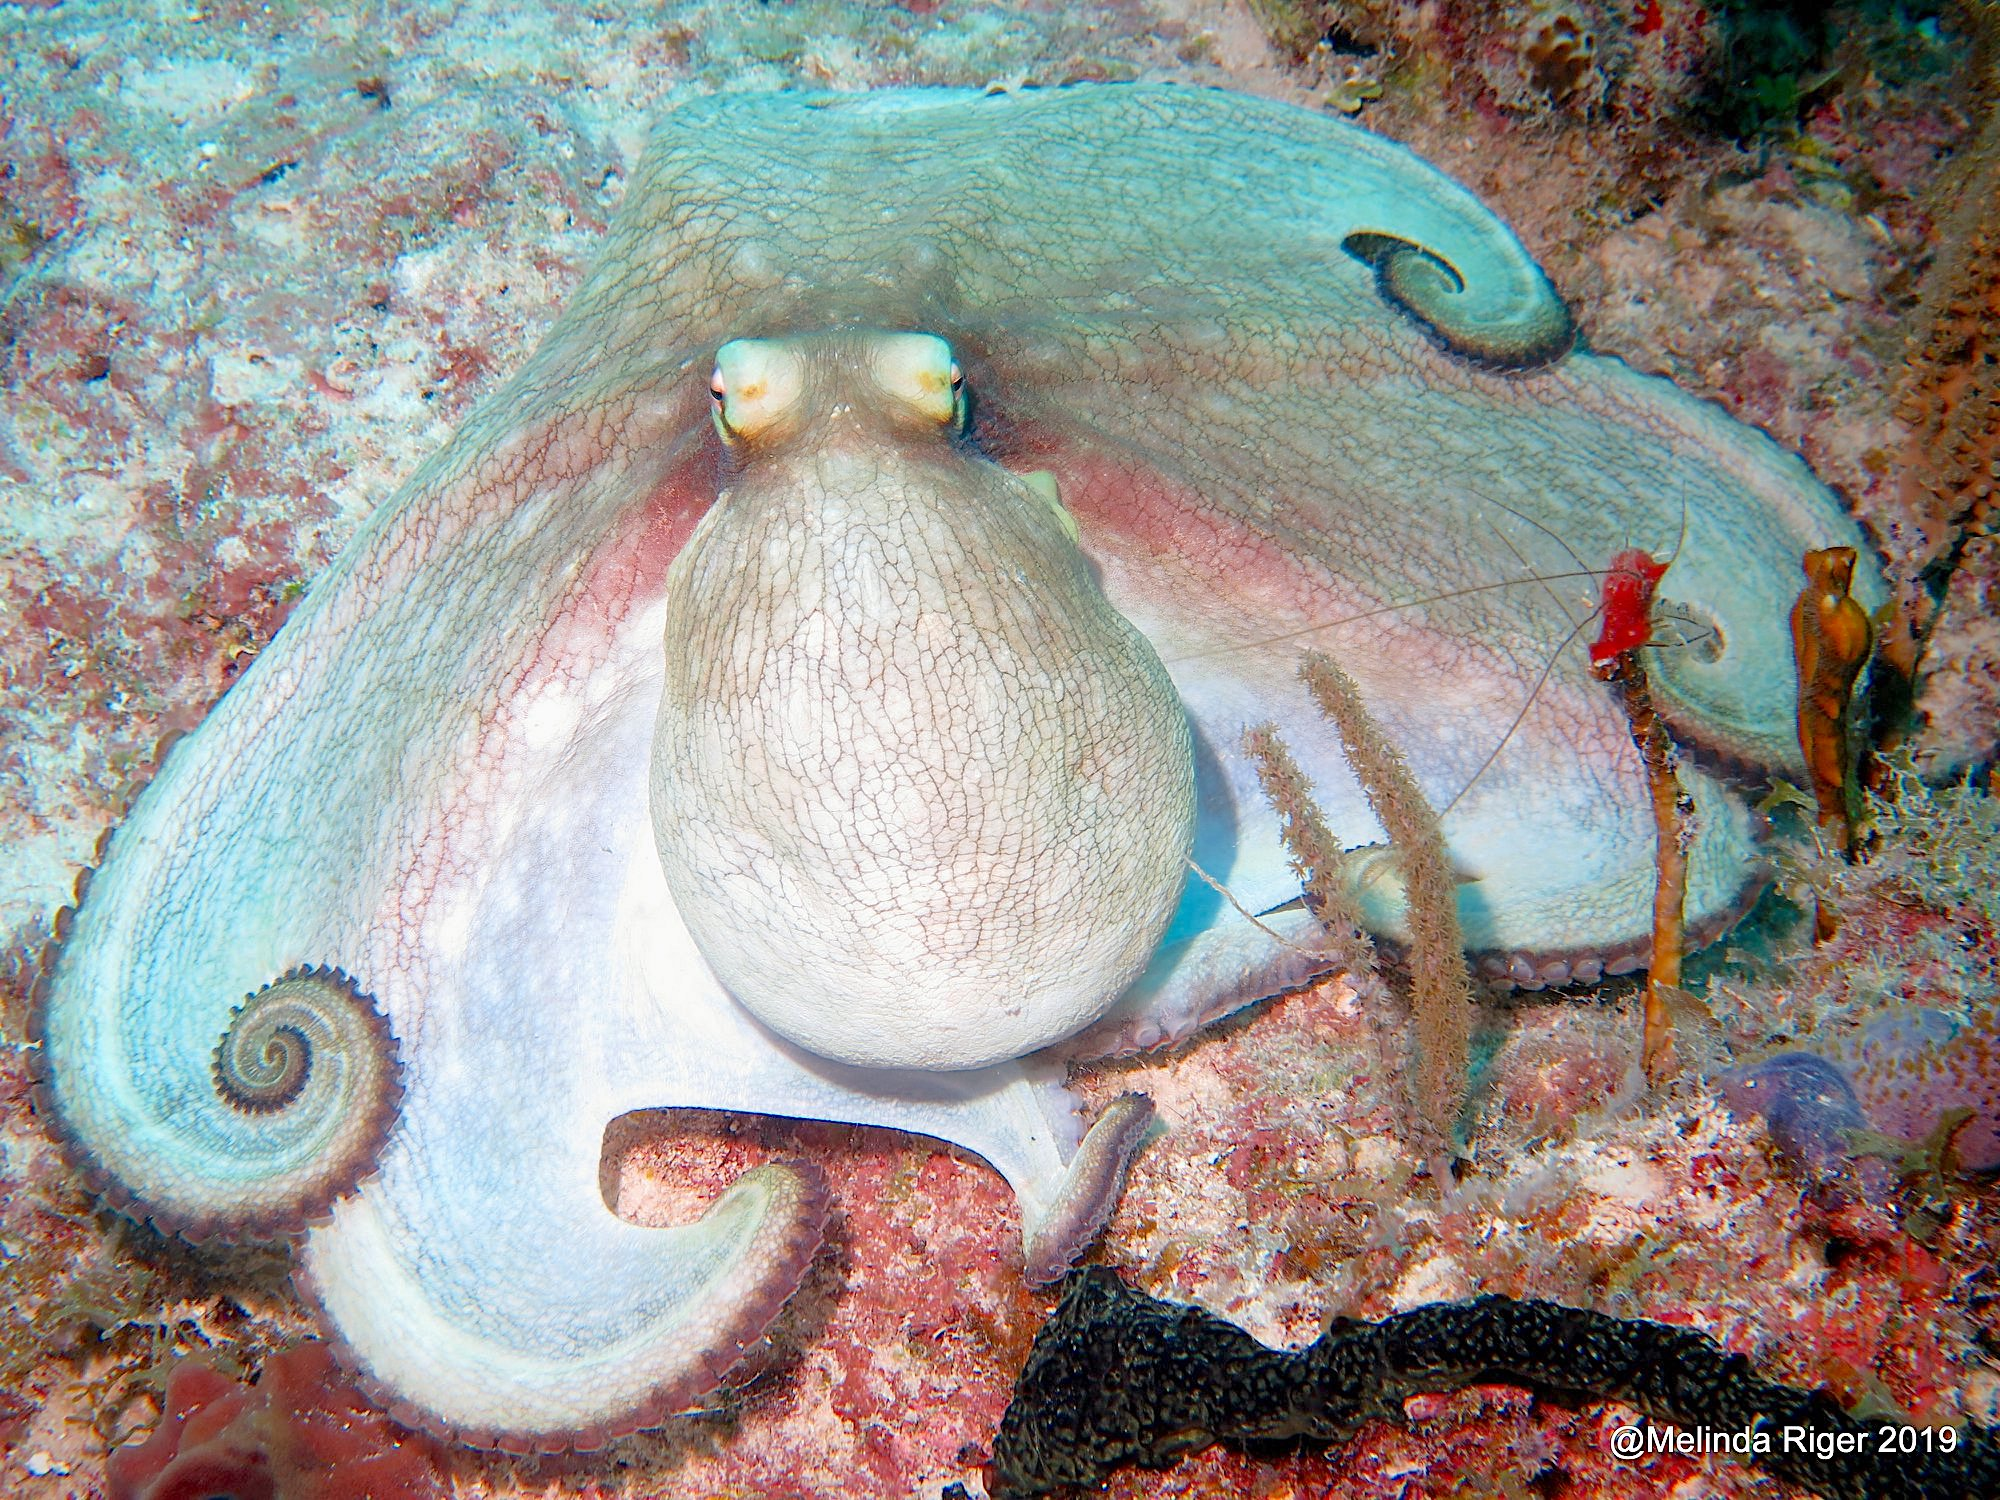 Octopus on the coral reef, Bahamas (Melinda Riger / GB Scuba)